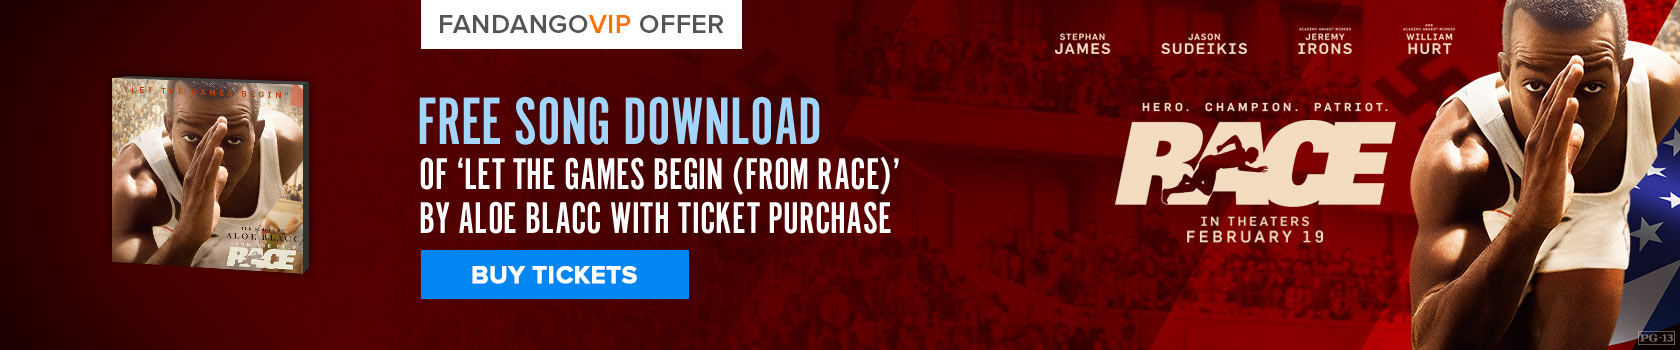 Fandango Race Free Gift With Purchase